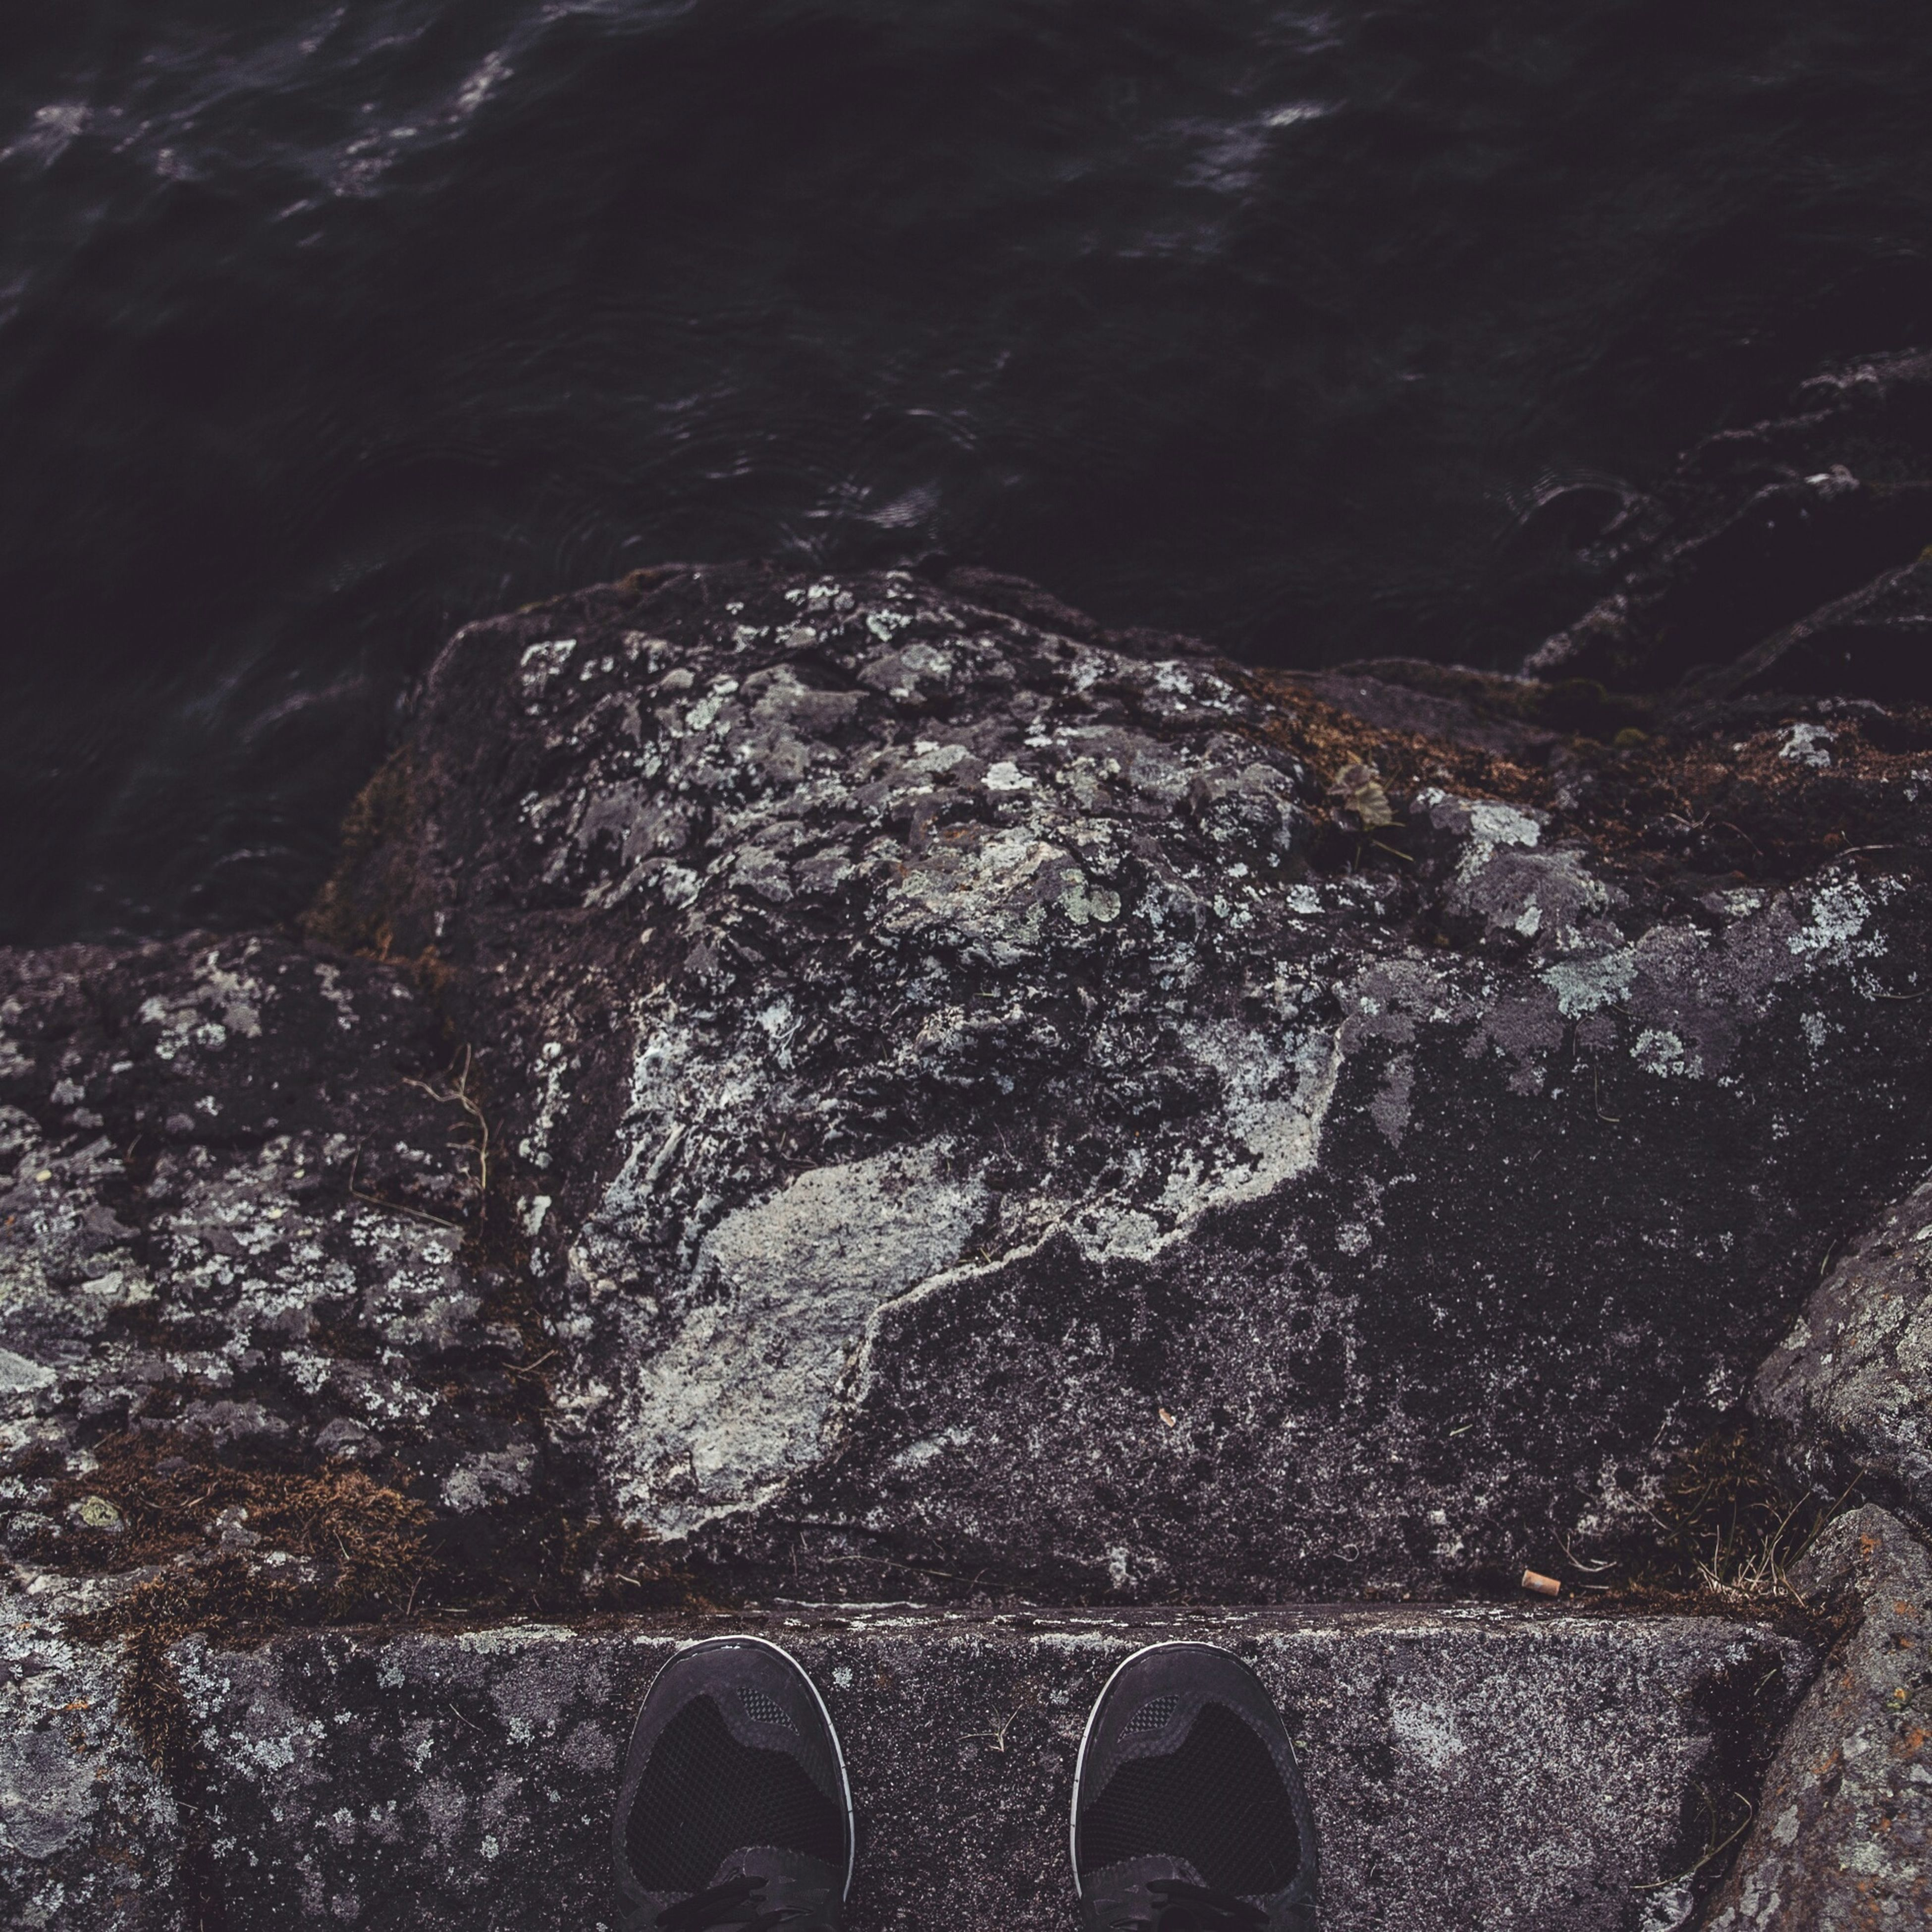 water, high angle view, low section, rock - object, person, personal perspective, outdoors, day, shoe, sea, river, unrecognizable person, transportation, part of, built structure, nature, architecture, reflection